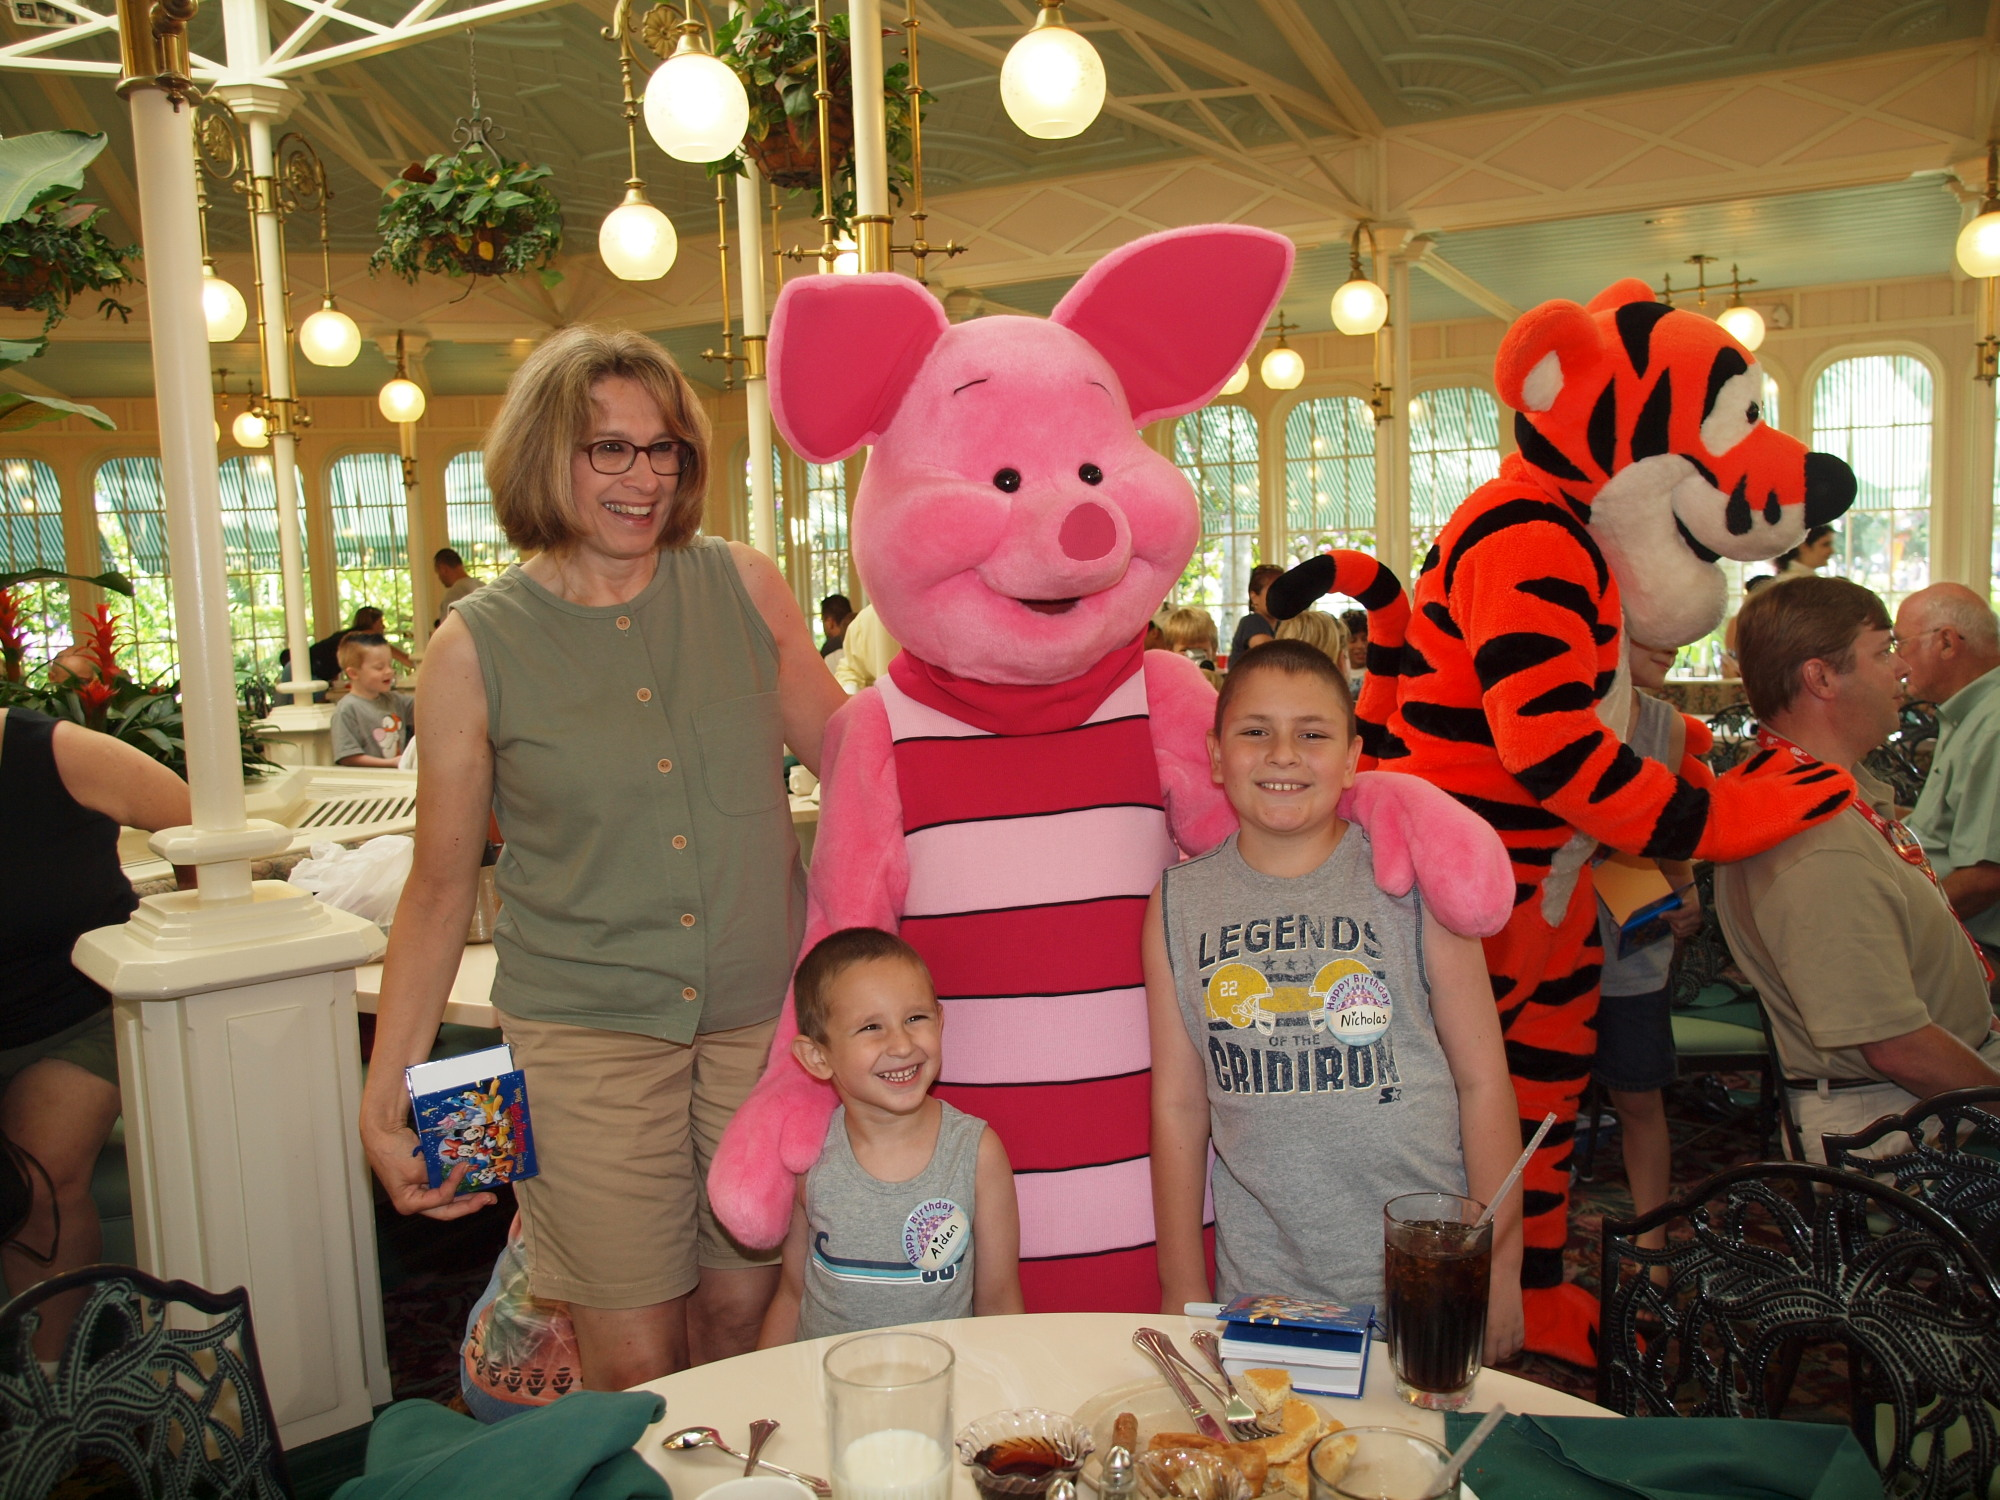 Magic Kingdom - Breakfast with Friends